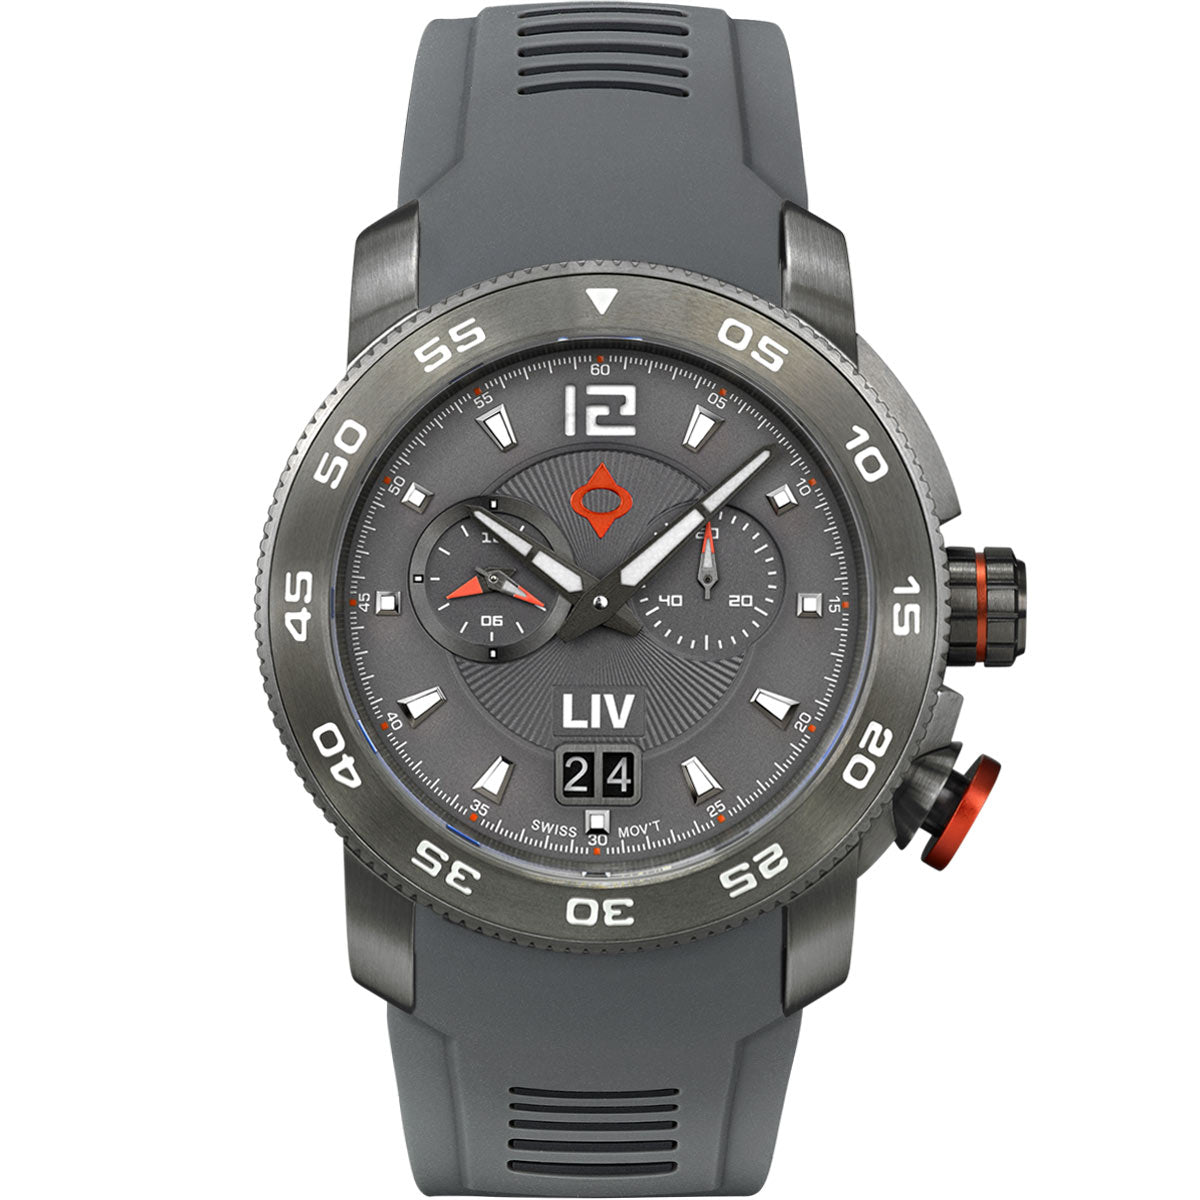 LIV GX Alarm Type-D Cool Gray